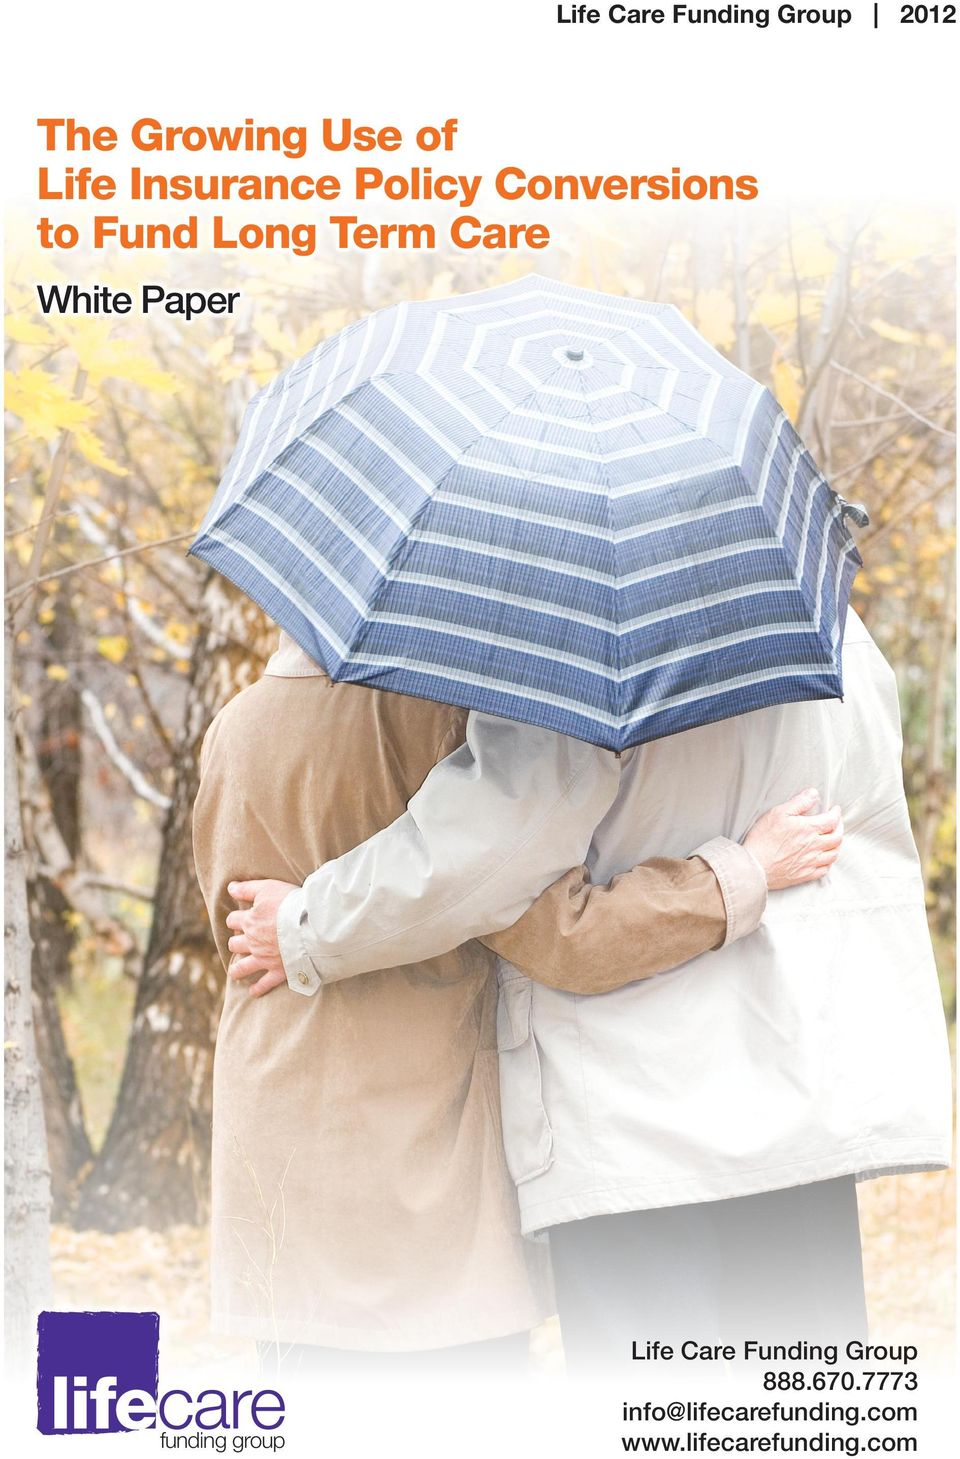 White Paper lifecare funding group Life Care Funding